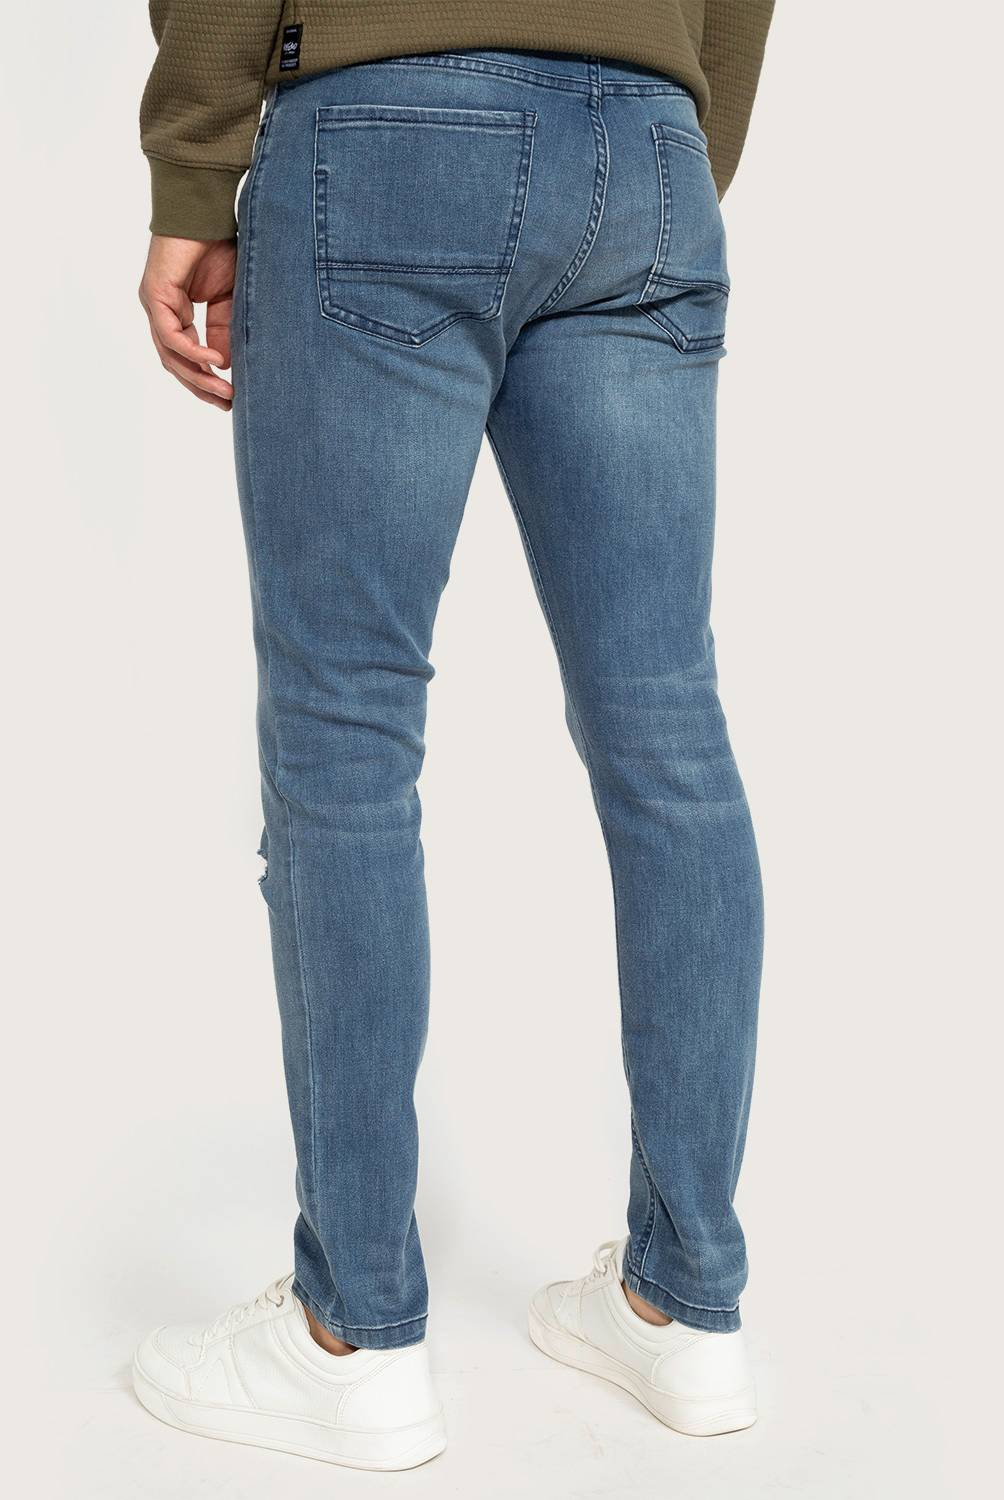 MOSSIMO - Jeans Skinny Hombre